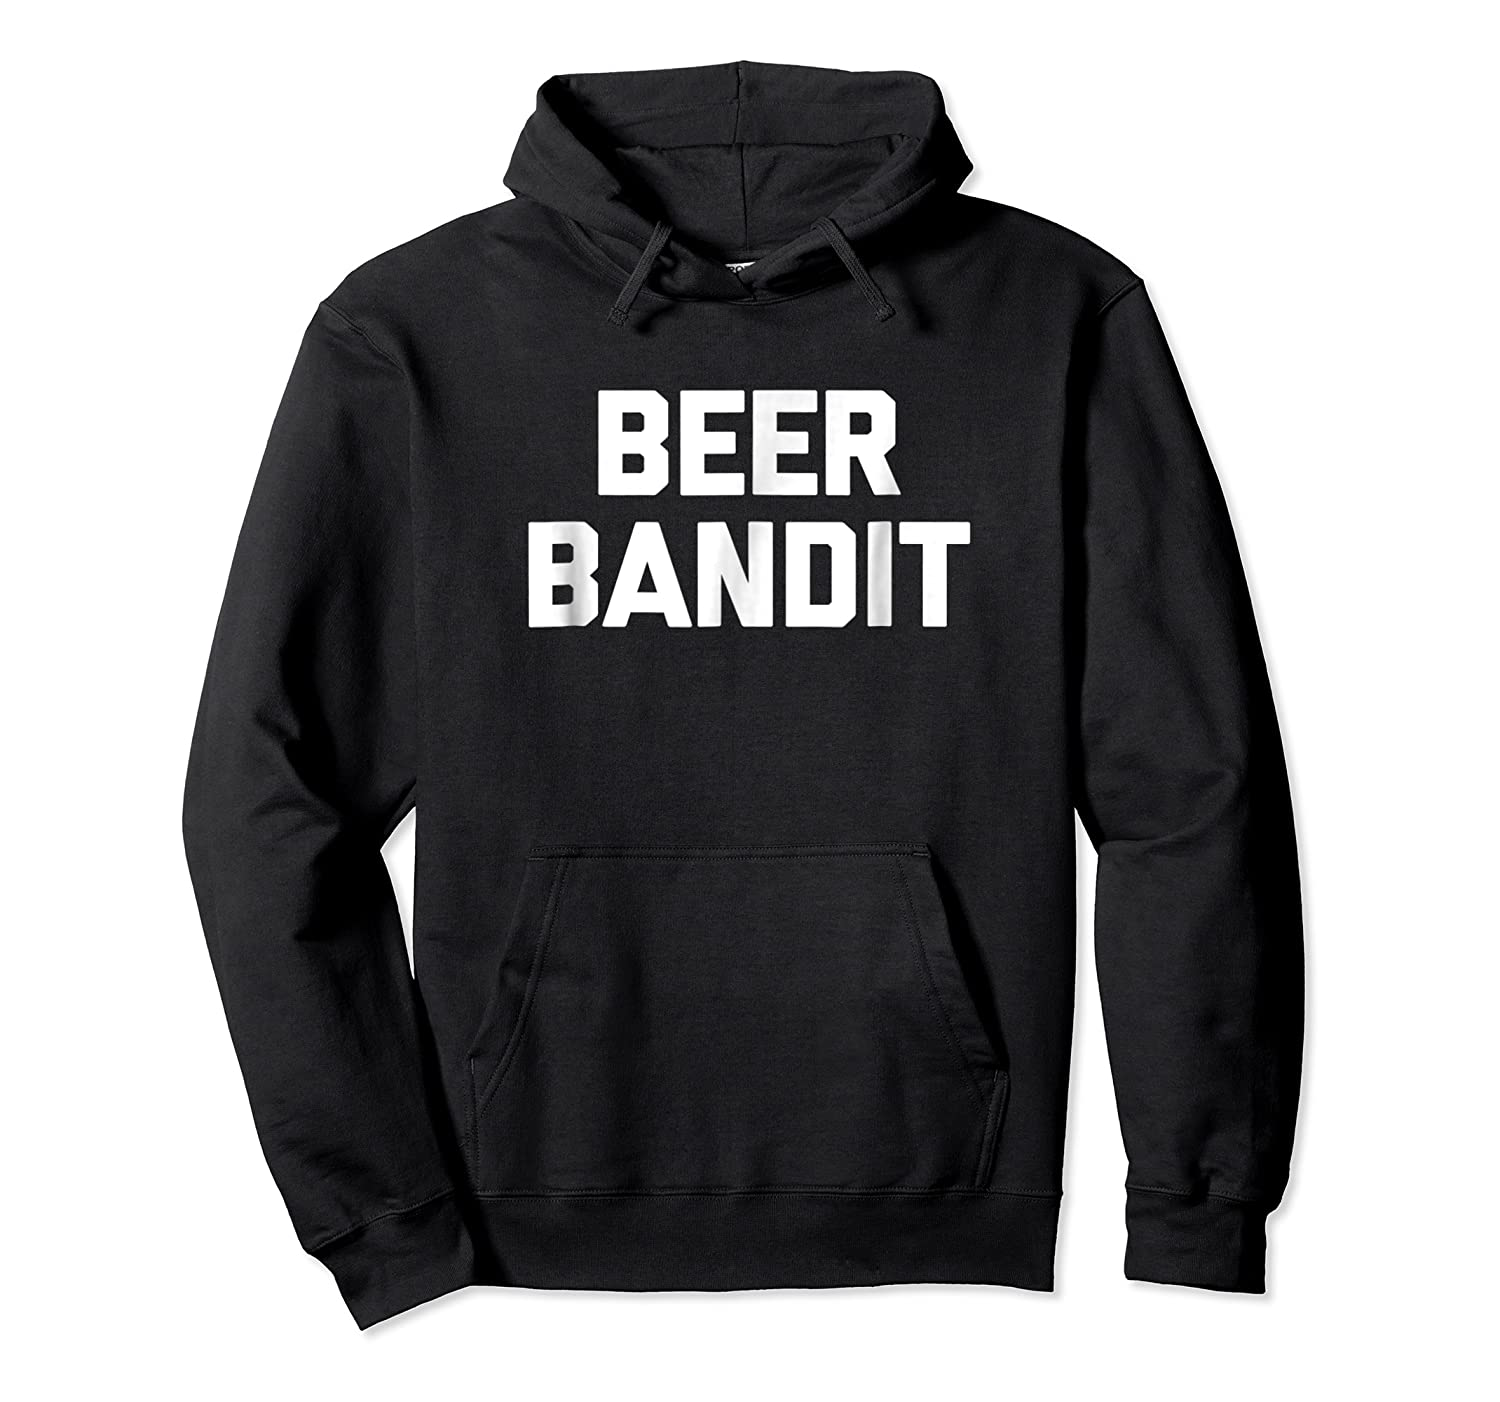 Funny Beer Beer Bandit Funny Saying Sarcastic Shirts Unisex Pullover Hoodie